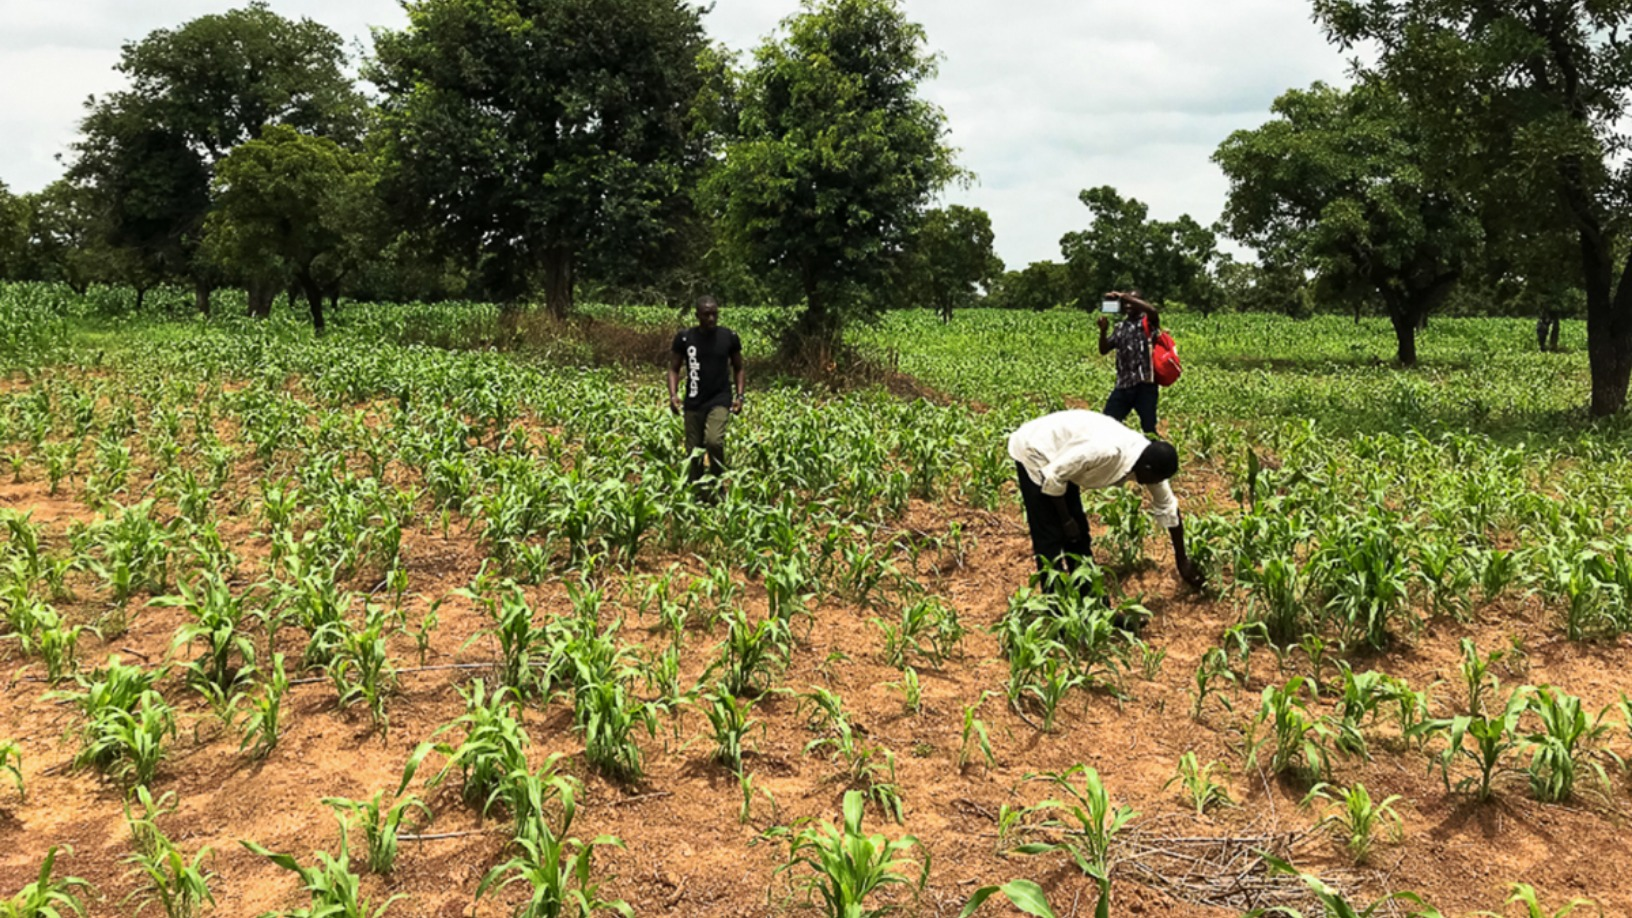 AgroCenta: Providing market access and credit to African smallholder farmers